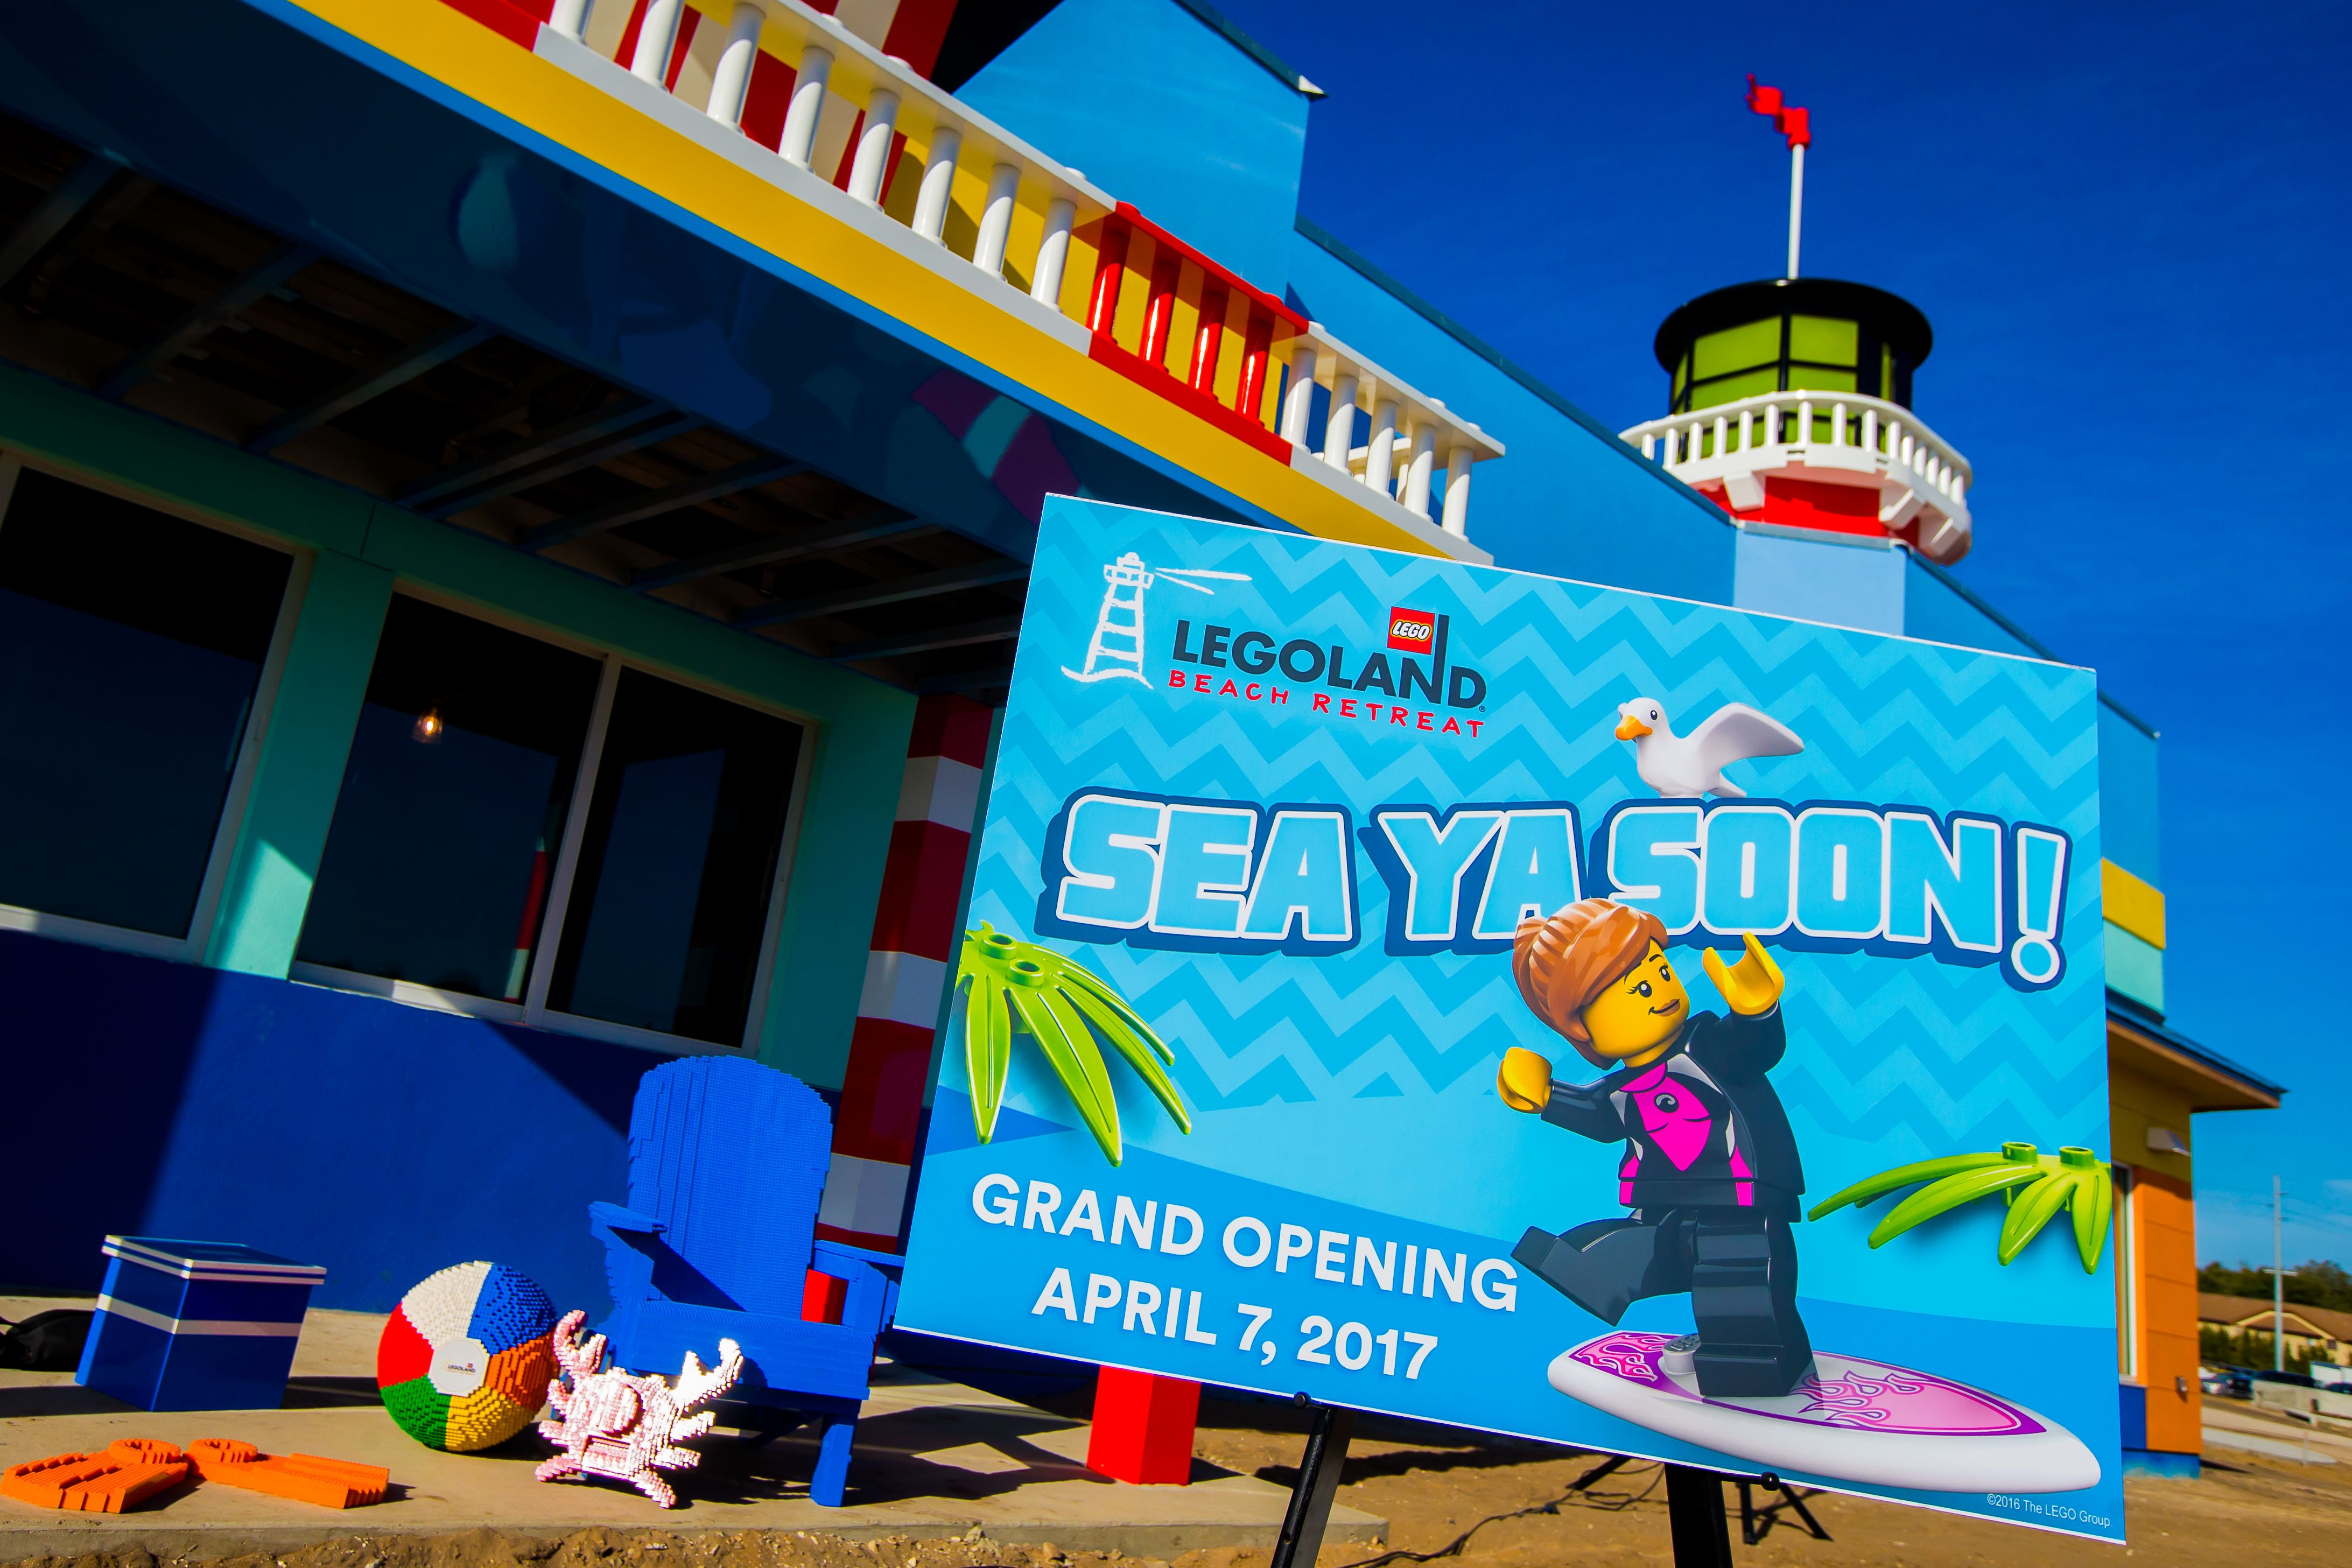 JUST ANNOUNCED: Build the perfect vacation at LEGOLAND® Beach Retreat, opening April 7, 2017!